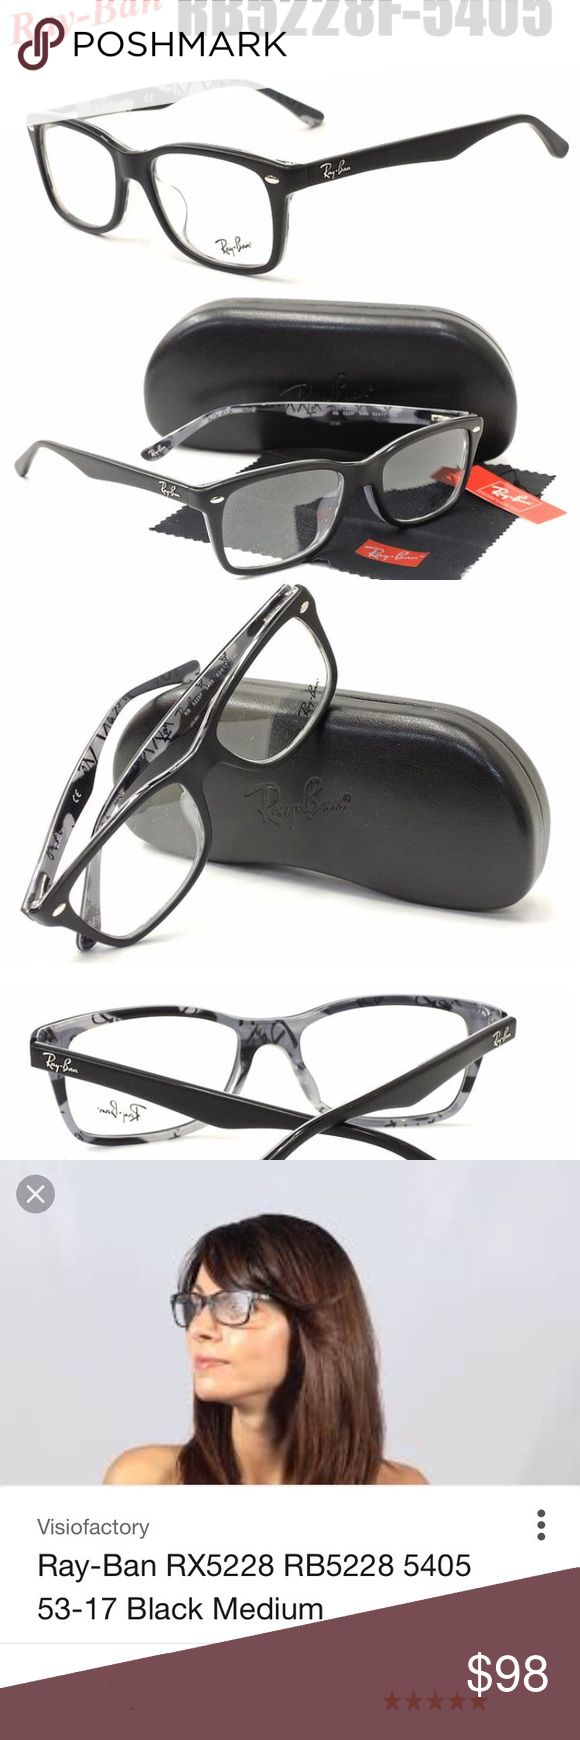 New Ray ban eye glasses RX5228 5405 53-17-140, New Ray ban eye glasses.  Black/Blue Frame / Clear Lenses unisex men's women's.  New in box, come w original Ray-Ban's box and wipe. Ray-Ban Accessories Glasses